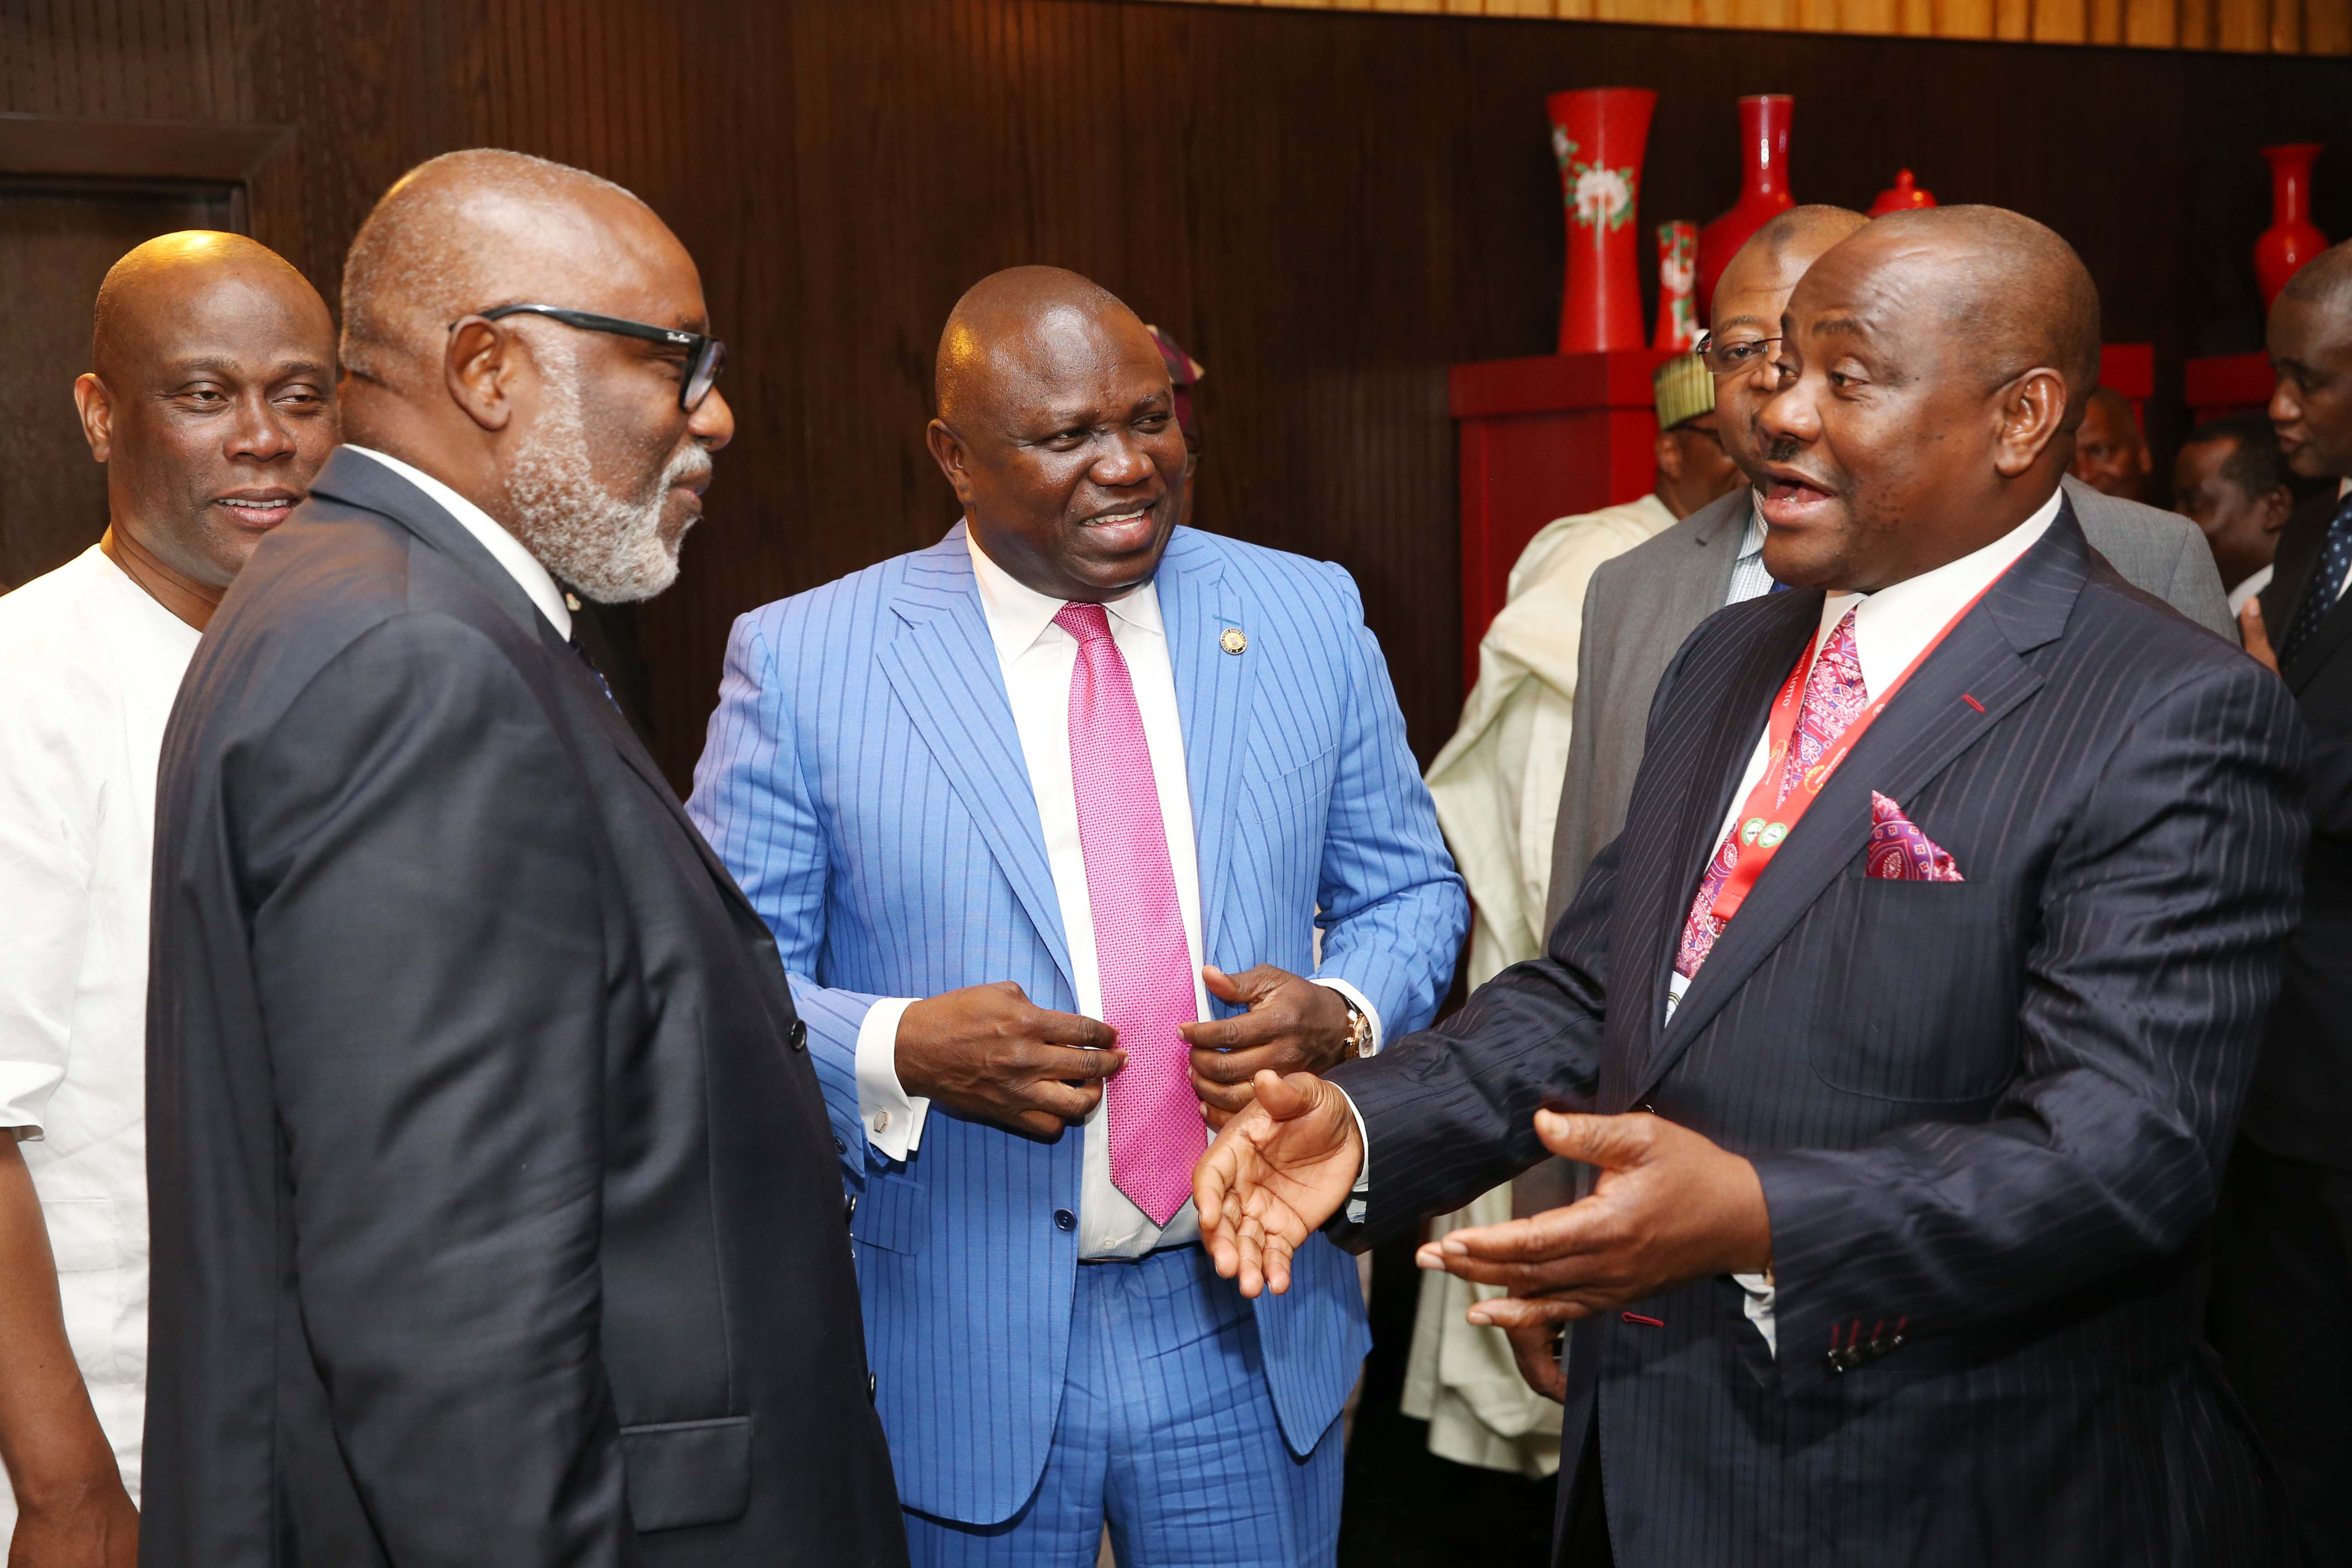 Ondo 2020: Don't Come With 'Do-or-Die' Version of Politics, APC Hits Wike